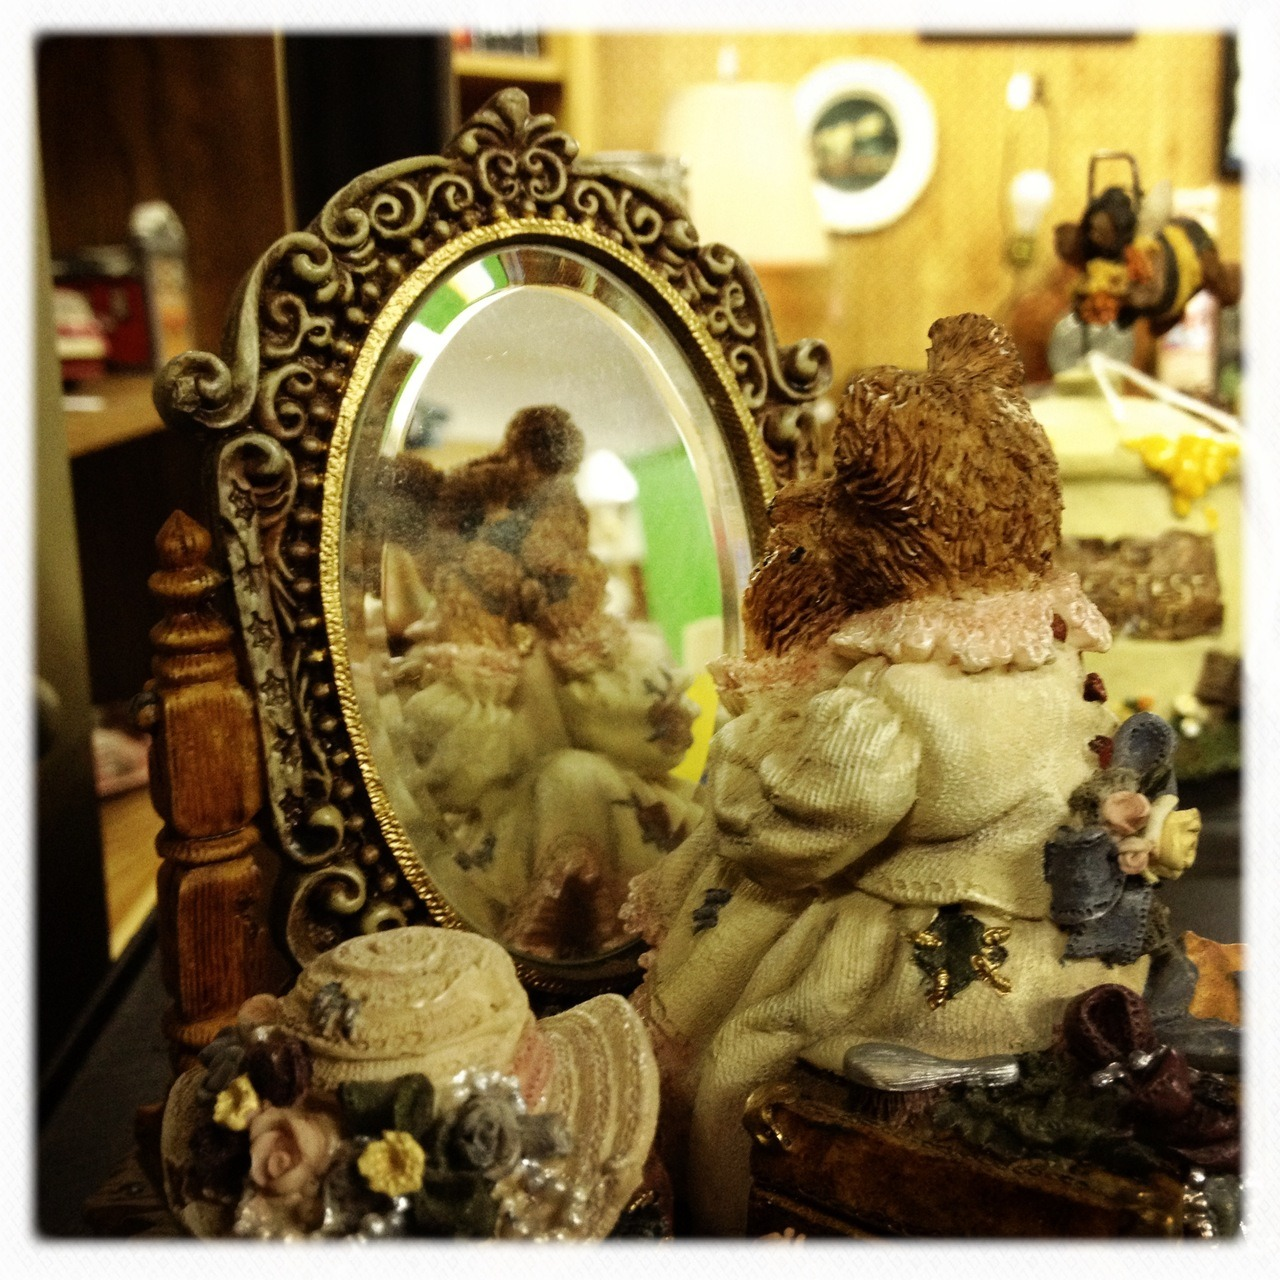 Weird things seen in antique stores . . Jane Lens, Ina's 1935 Film, No Flash, Taken with Hipstamatic